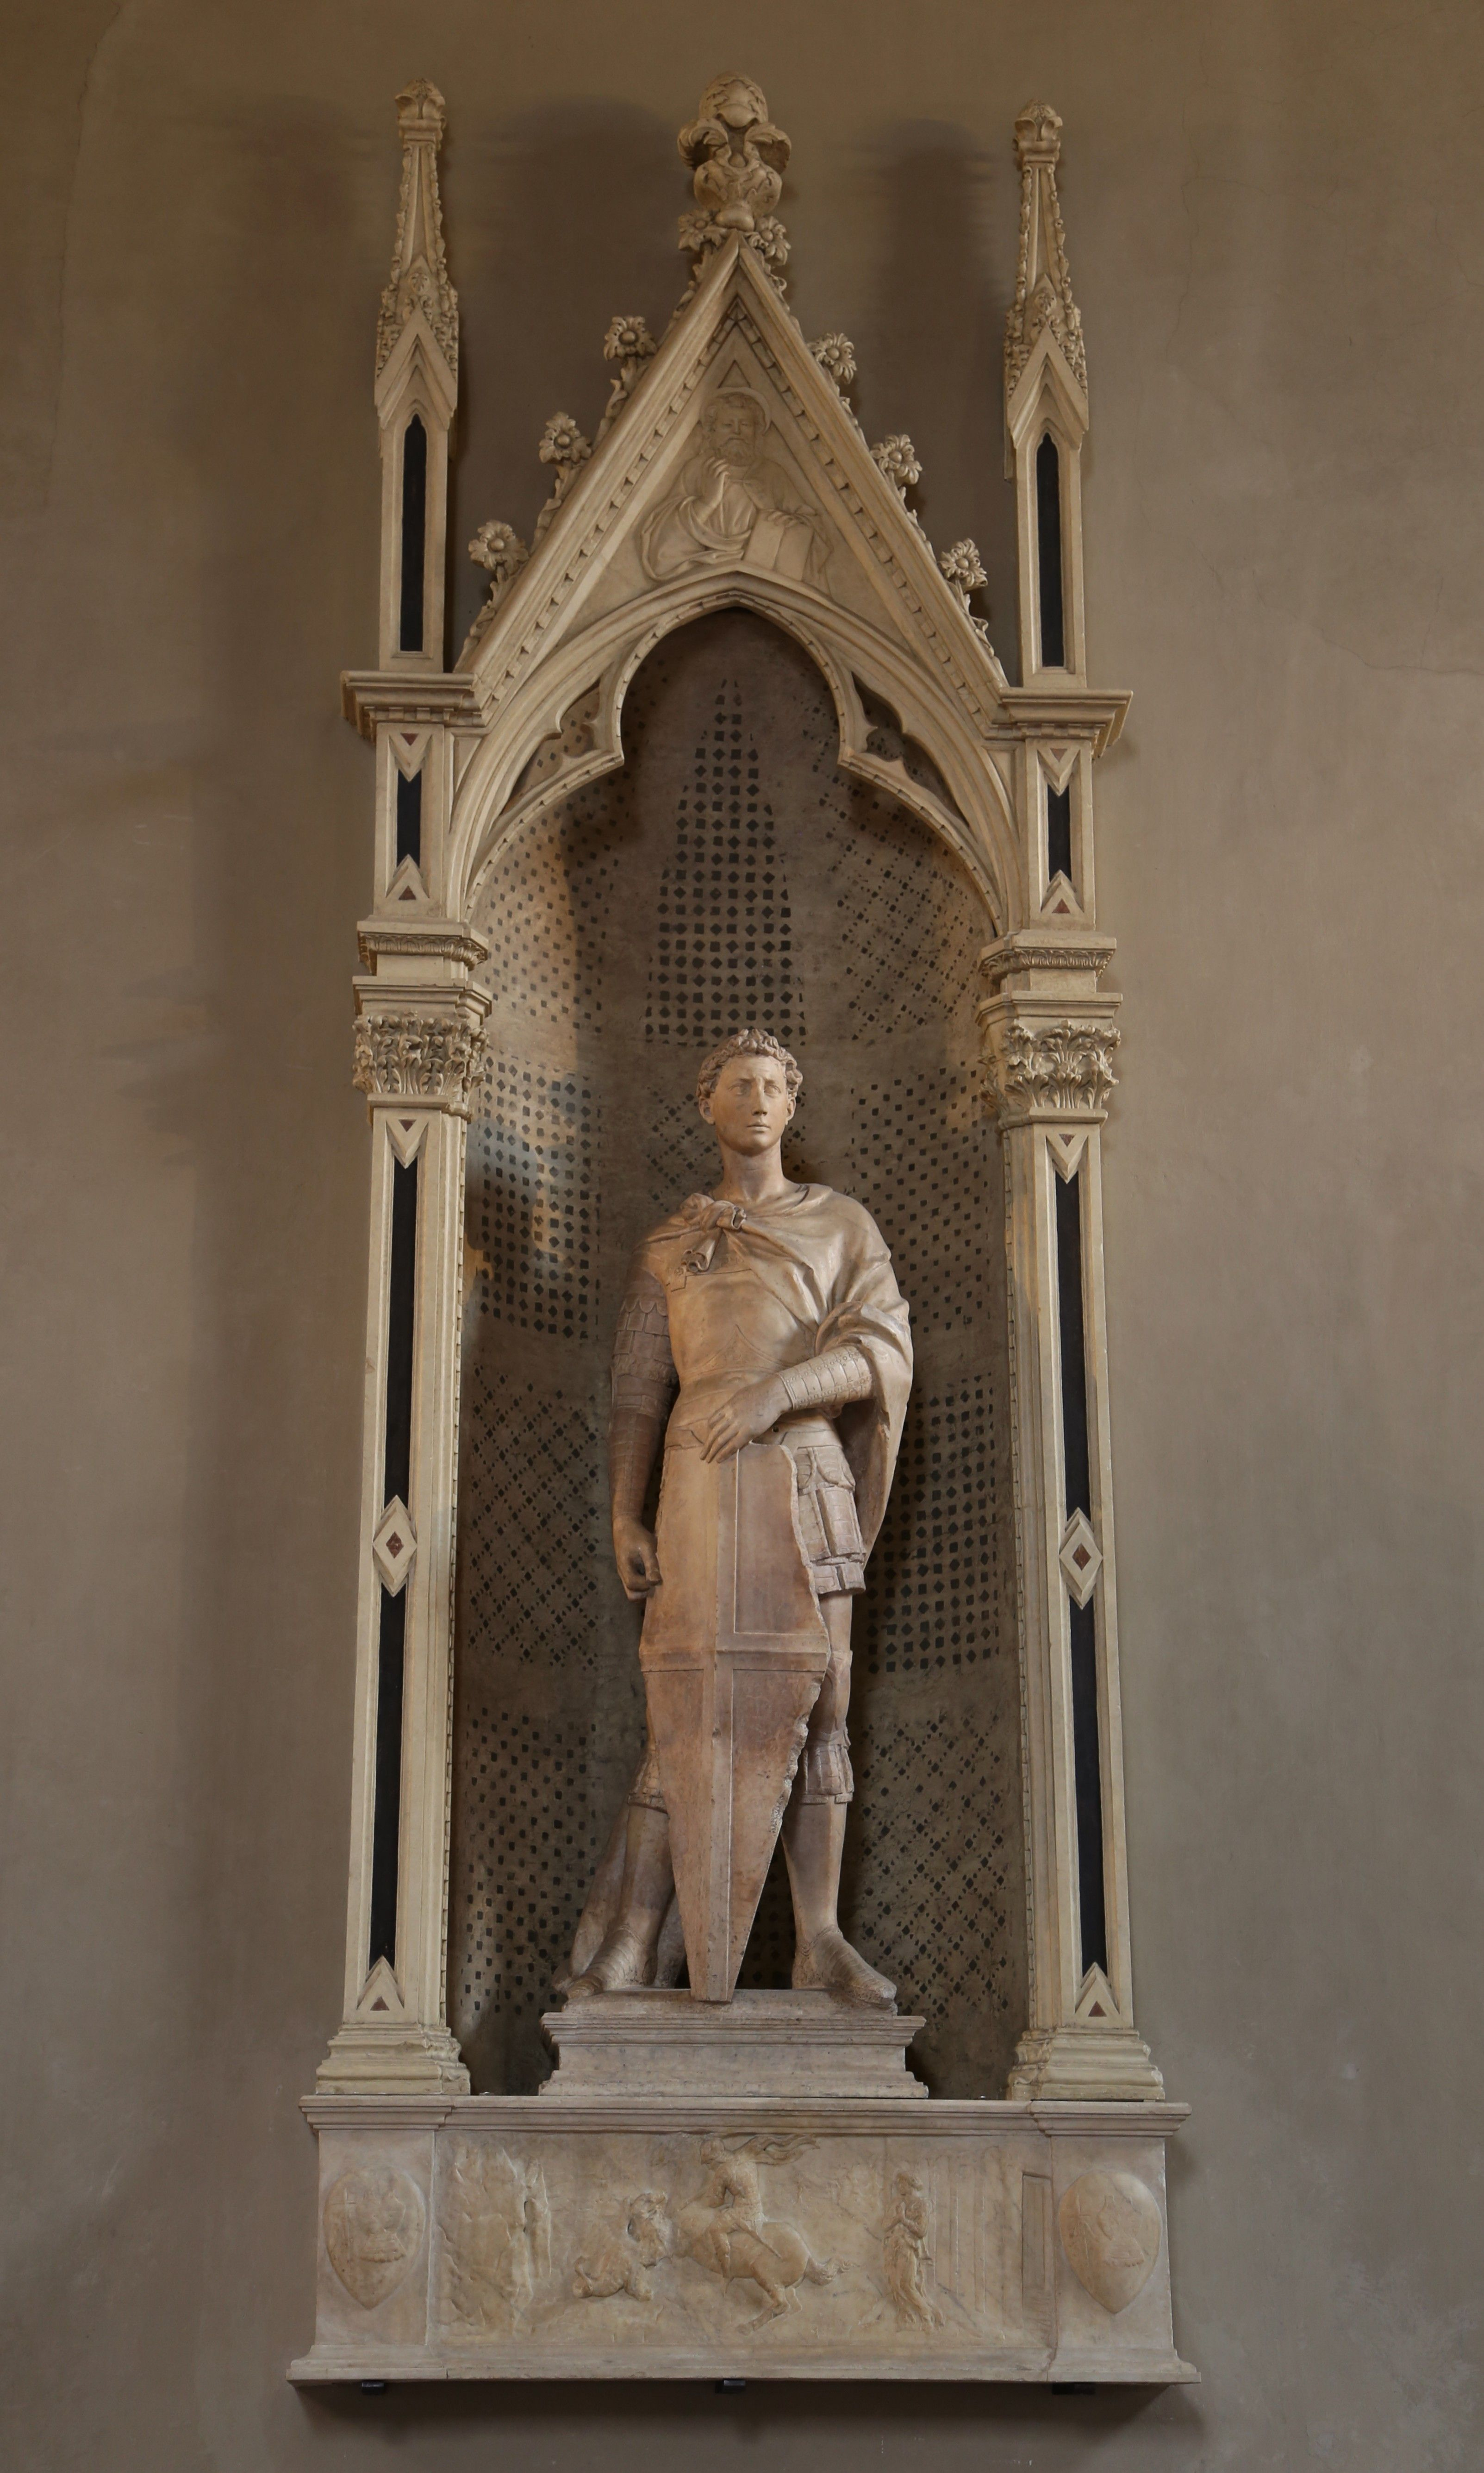 St George at Orsanmichele | Donatellos statue of St